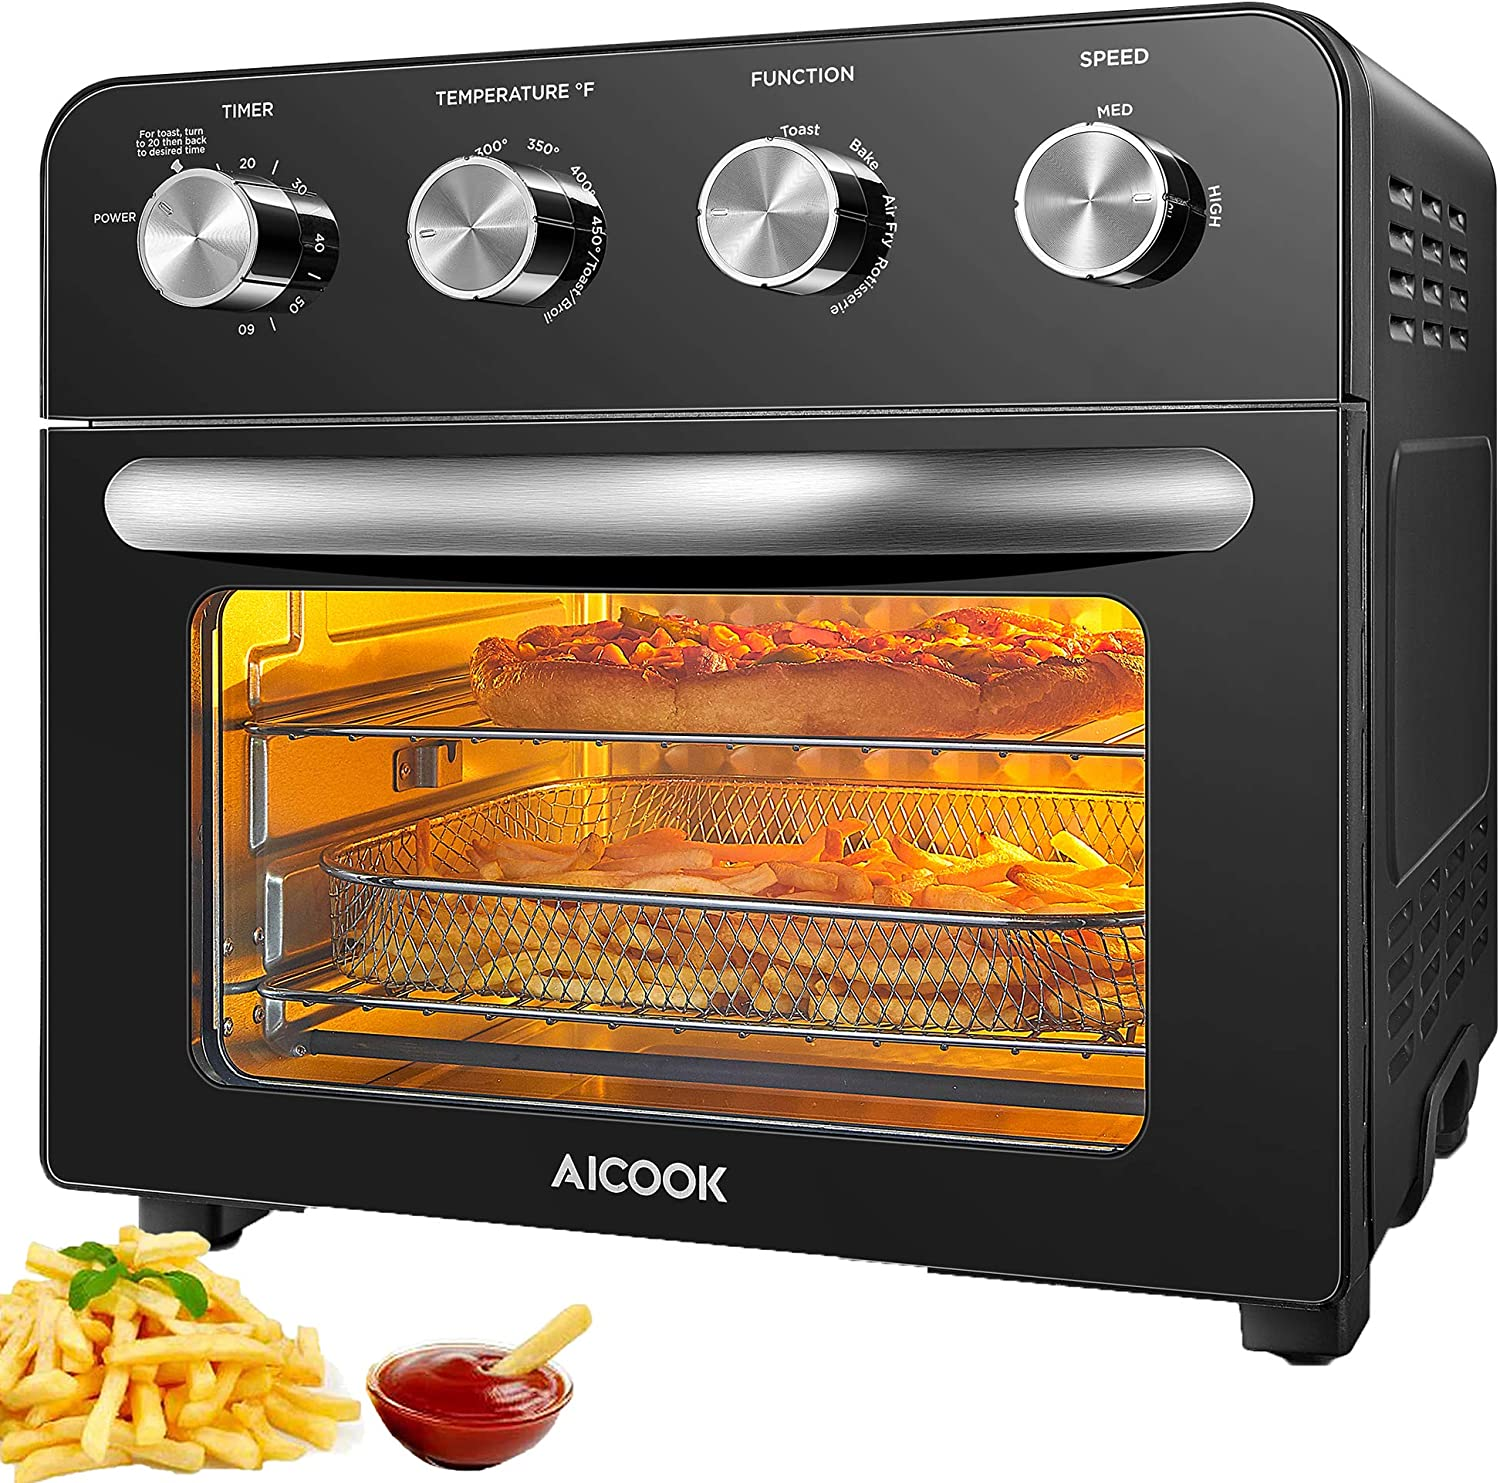 10-in-1 Air Fryer Oven 1700W AICOOK 24 Quart Airfryer Toaster Oven for Chicken, Pizza, Fries and Cookies, Convection Roaster with 6 Accessories & Recipes Included, Black